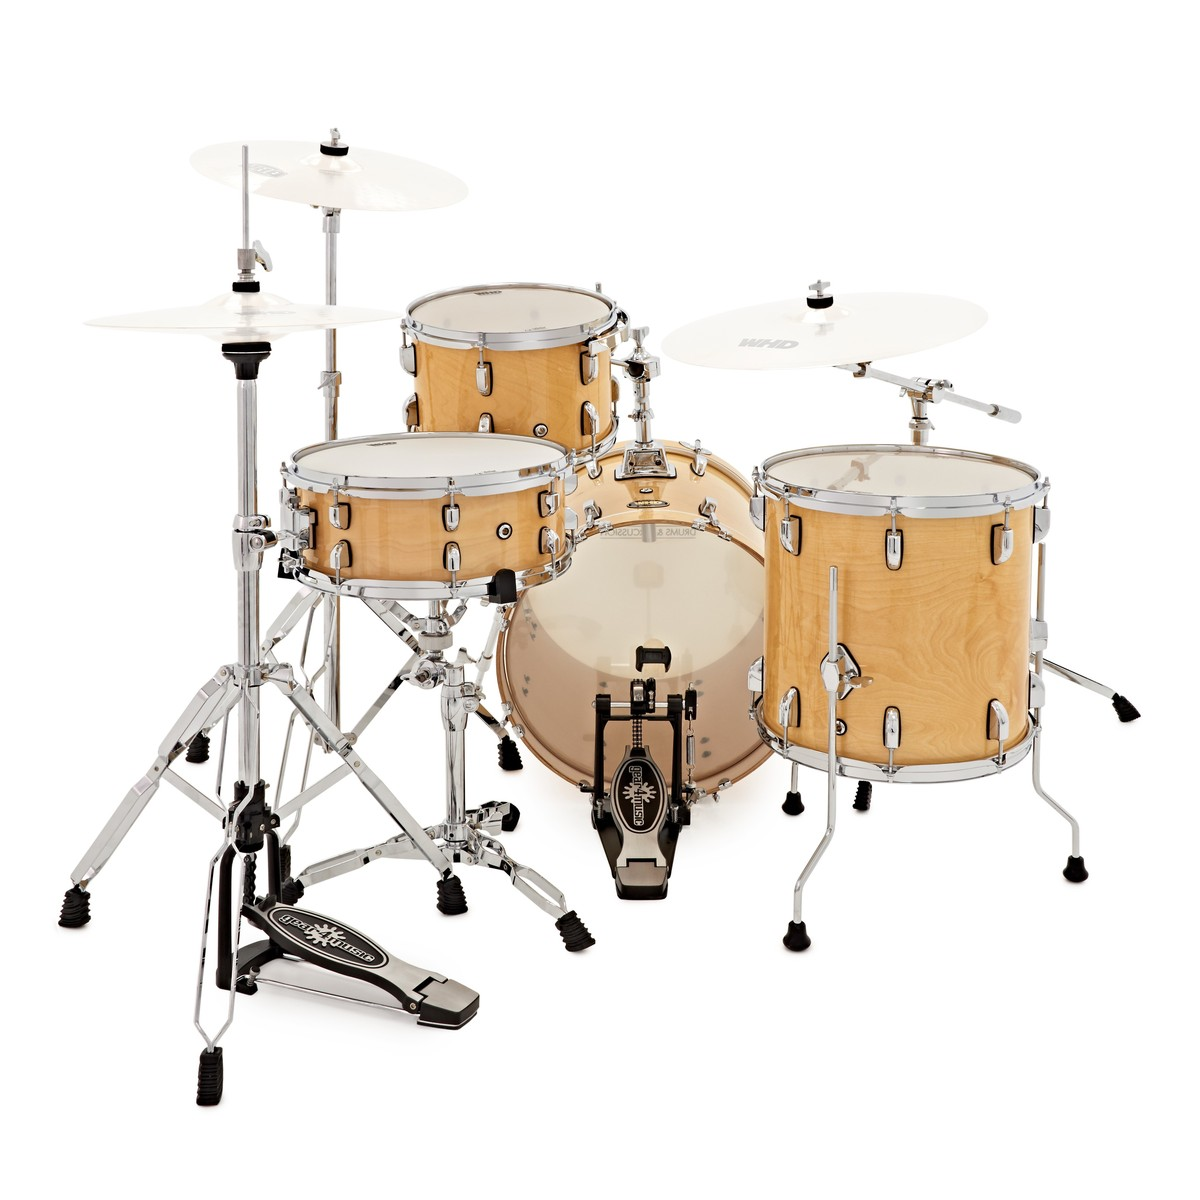 whd elite 4 piece jazz drum kit natural w hardware pack at gear4music. Black Bedroom Furniture Sets. Home Design Ideas